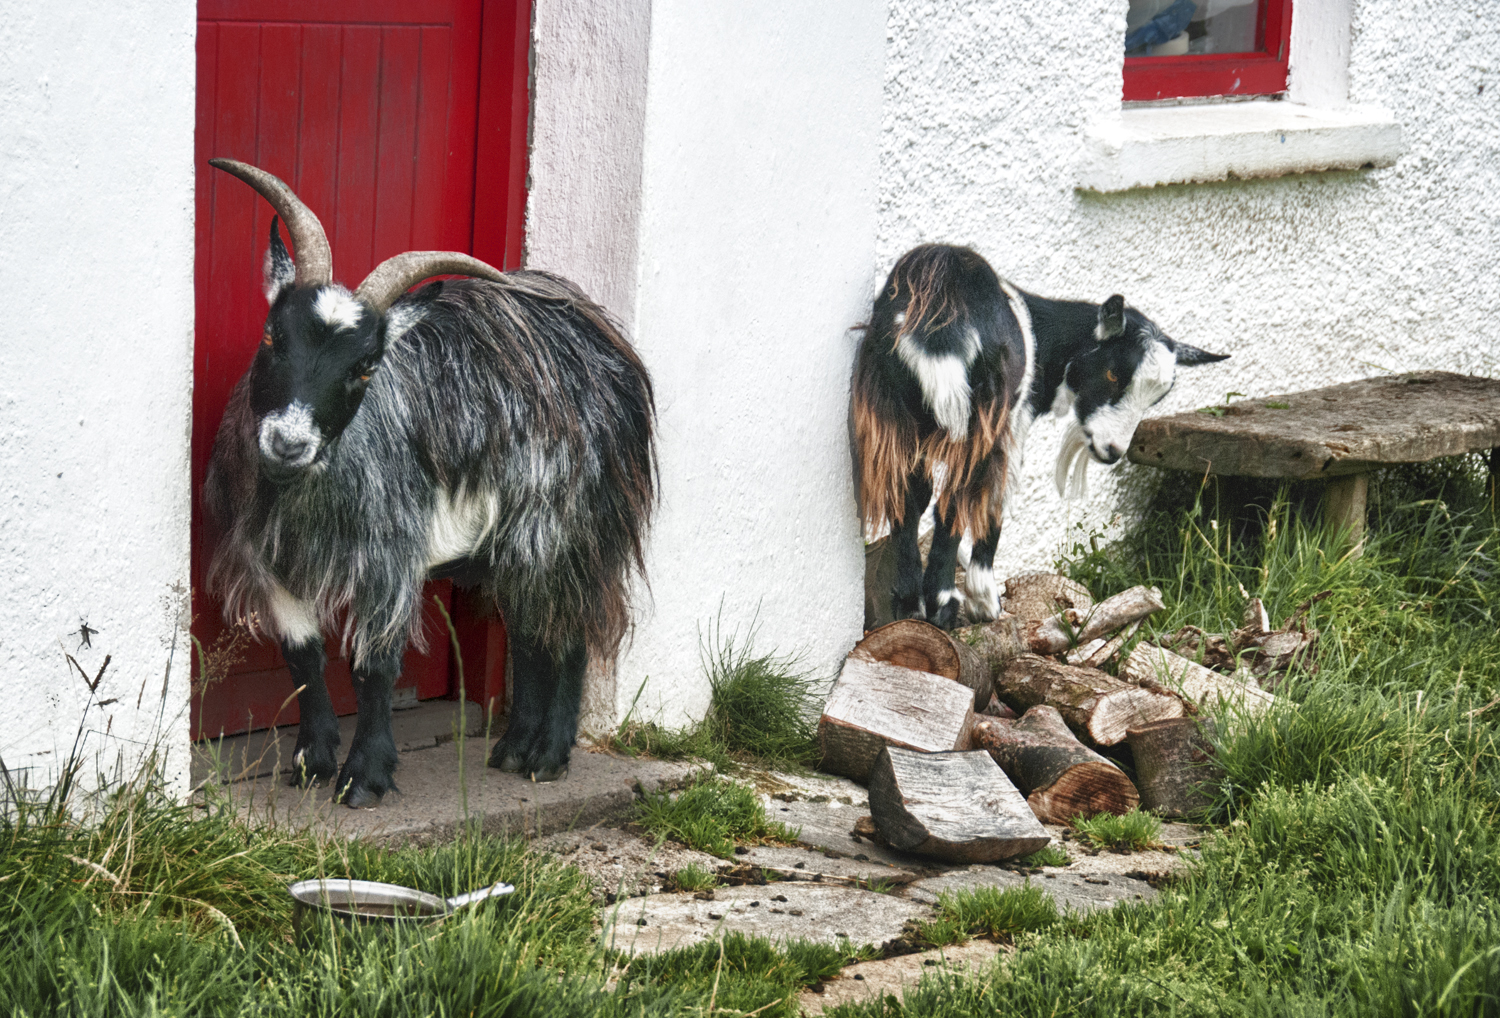 Goats and Red Door, Slieve League